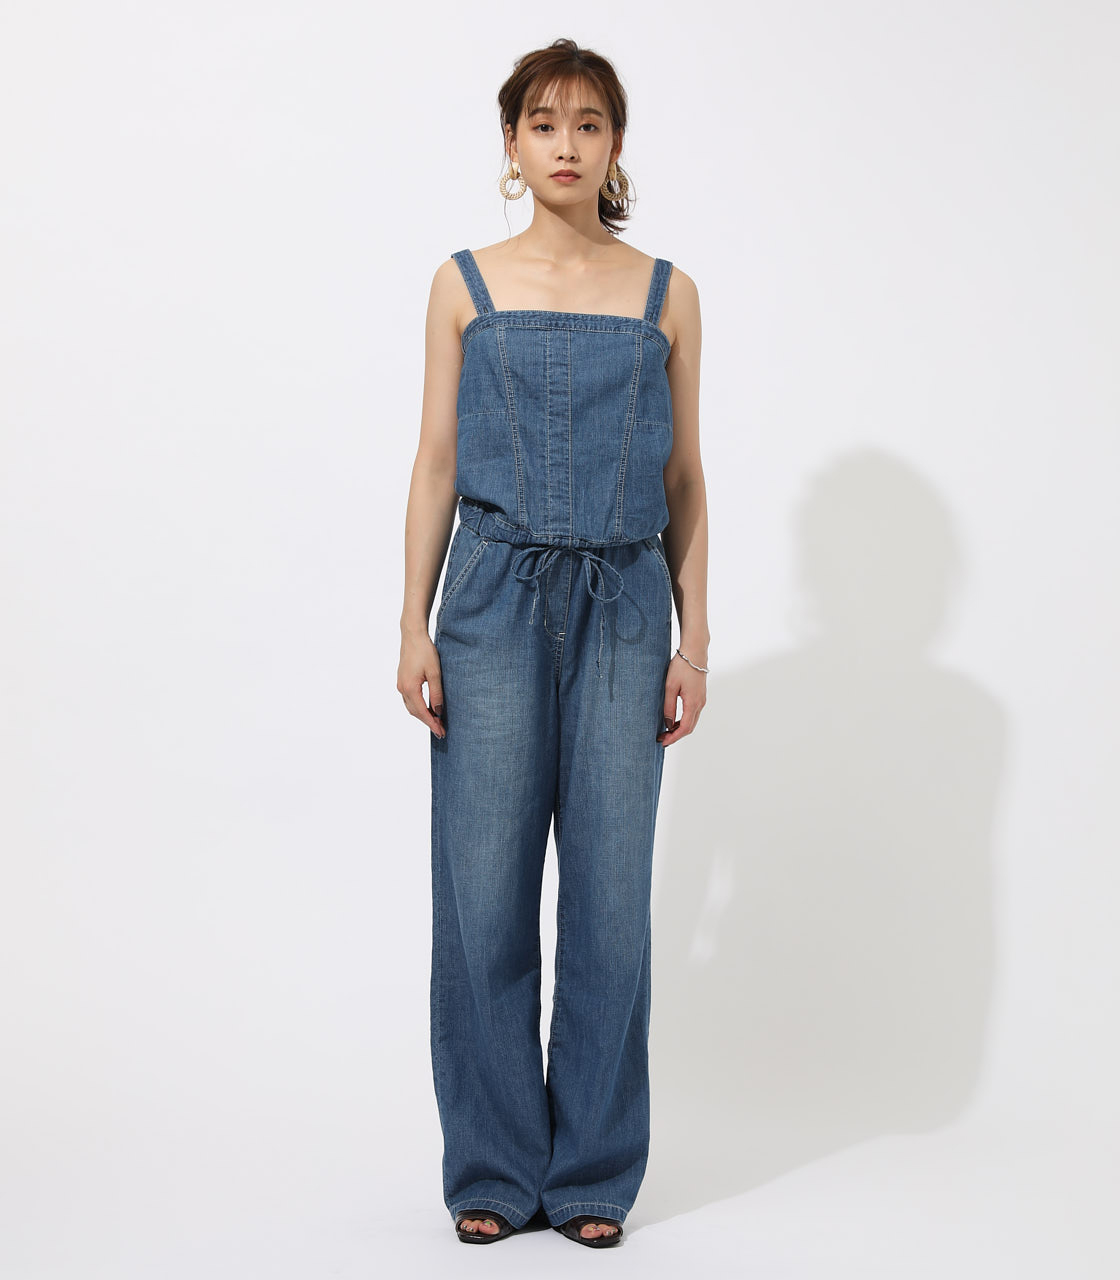 BACK LACEUP OVERALLS 詳細画像 BLU 4